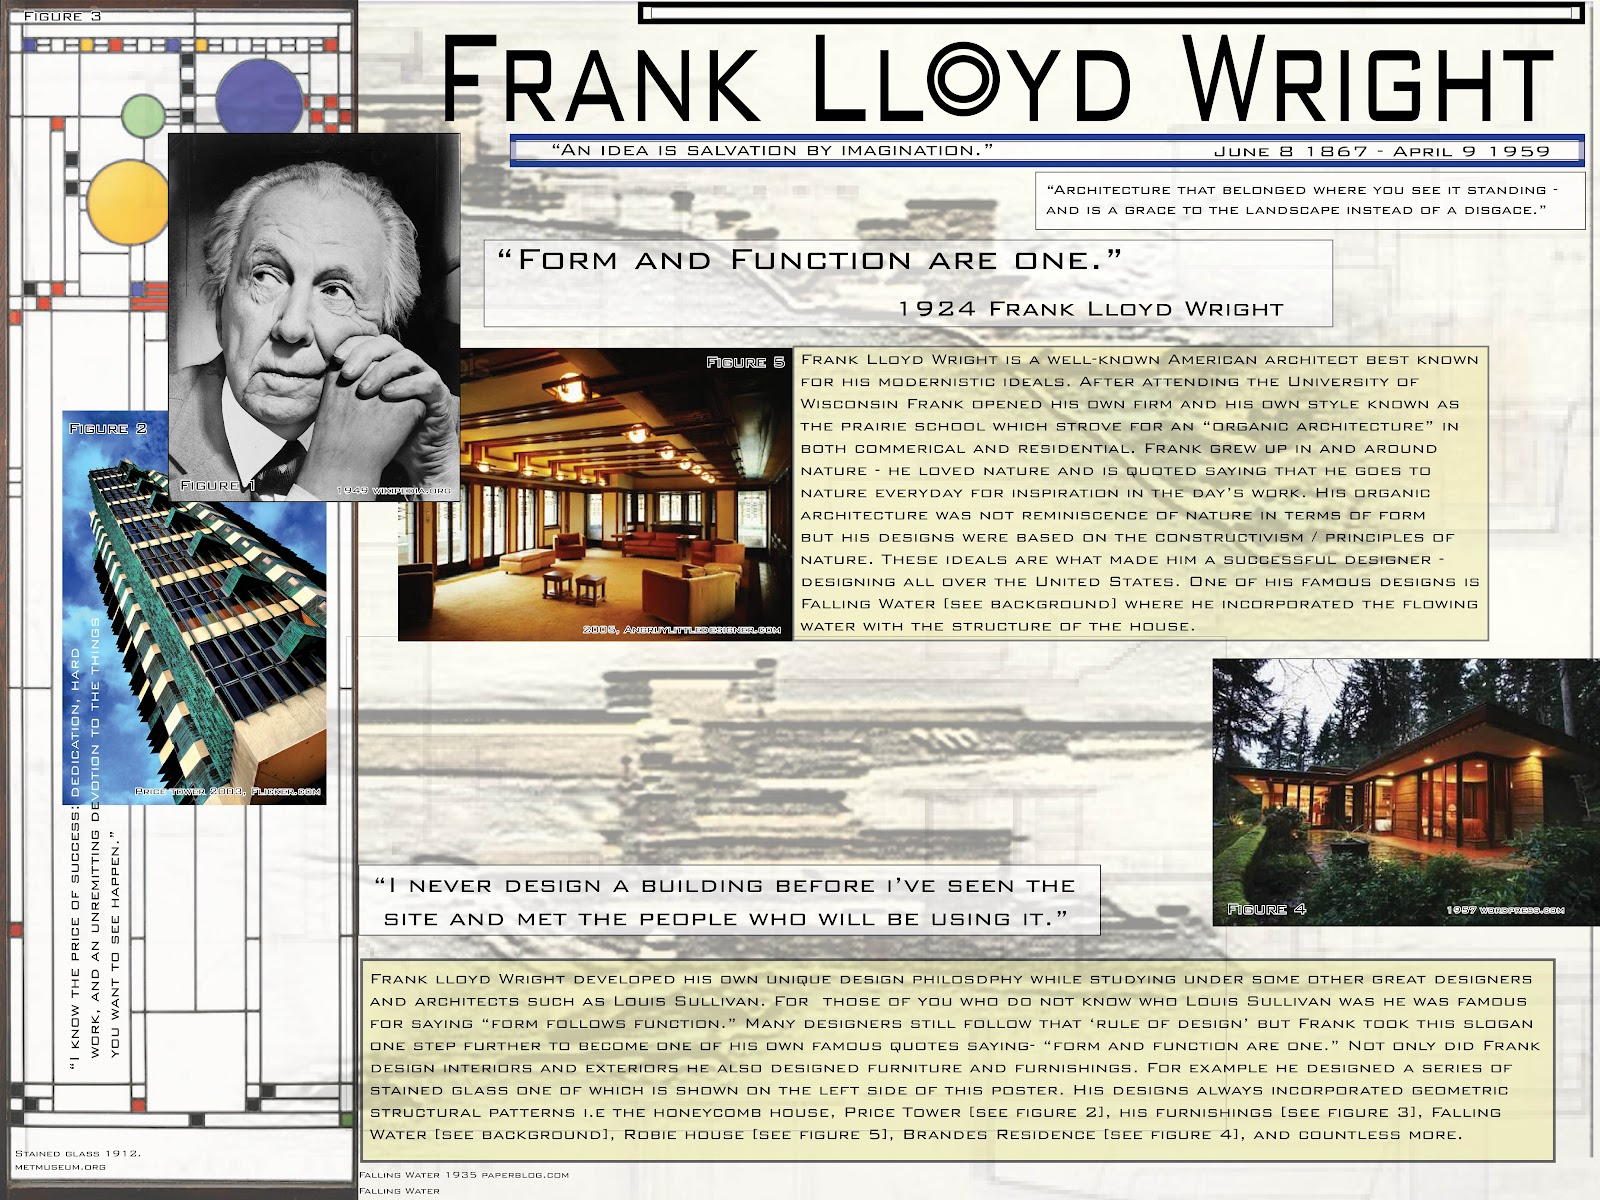 Katie rohrbach interiors july 2012 for Frank lloyd wright parents